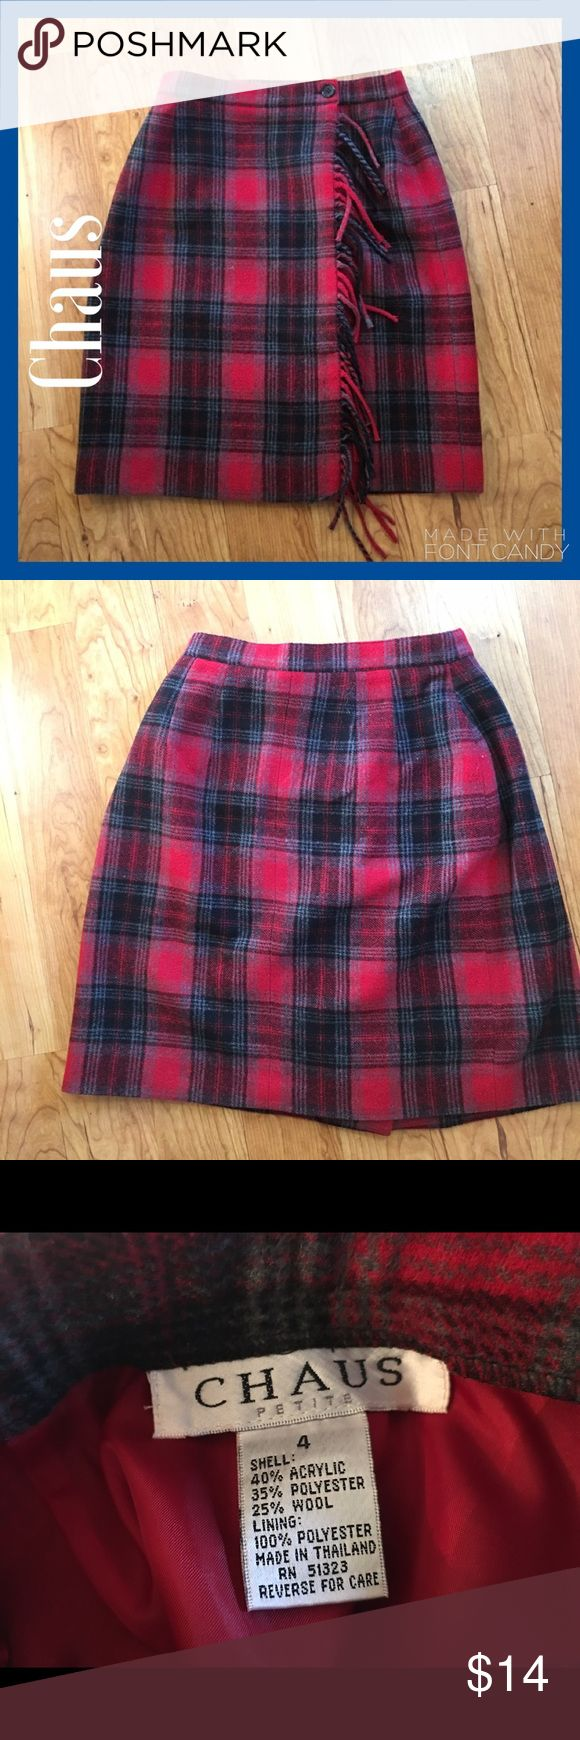 Beautiful Wool Red and Black Plaid Shirt Beautiful Wool Red and Black Plaid Shirt. Perfect with a pair of tights and a classy sweater. Label says petite, but more like a regular. Great condition. Skirts